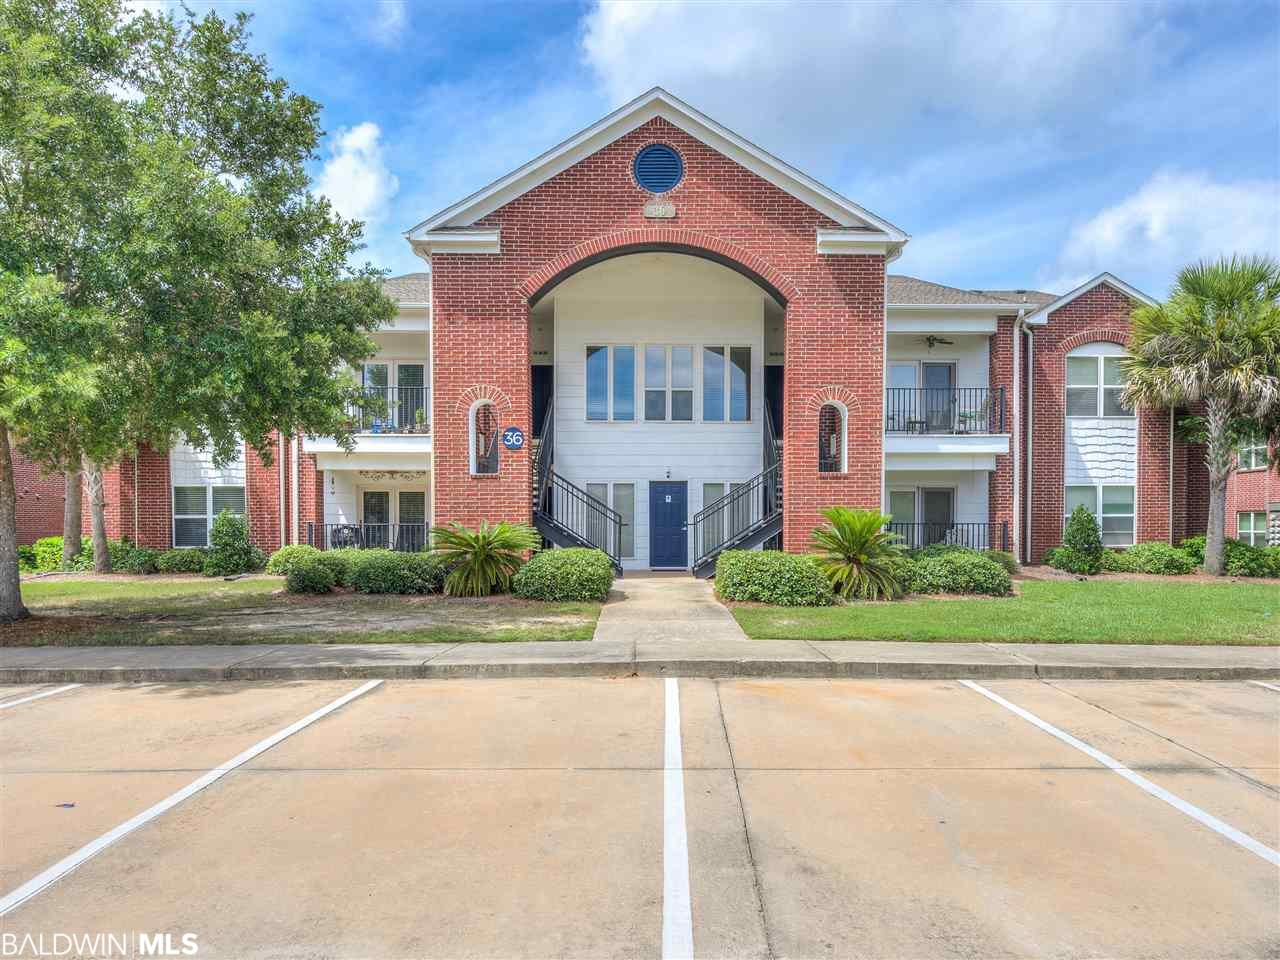 This beautifully furnished 1 bedroom plus bonus room that could be used as a second bedroom has great views of the 7th fairway.  This non rental would make a great rental or second home.  Amenities include Golf, Resort Style Pool with Play area for kids, Tennis Courts and a 3,300 sq.ft Fitness Center and so much more.